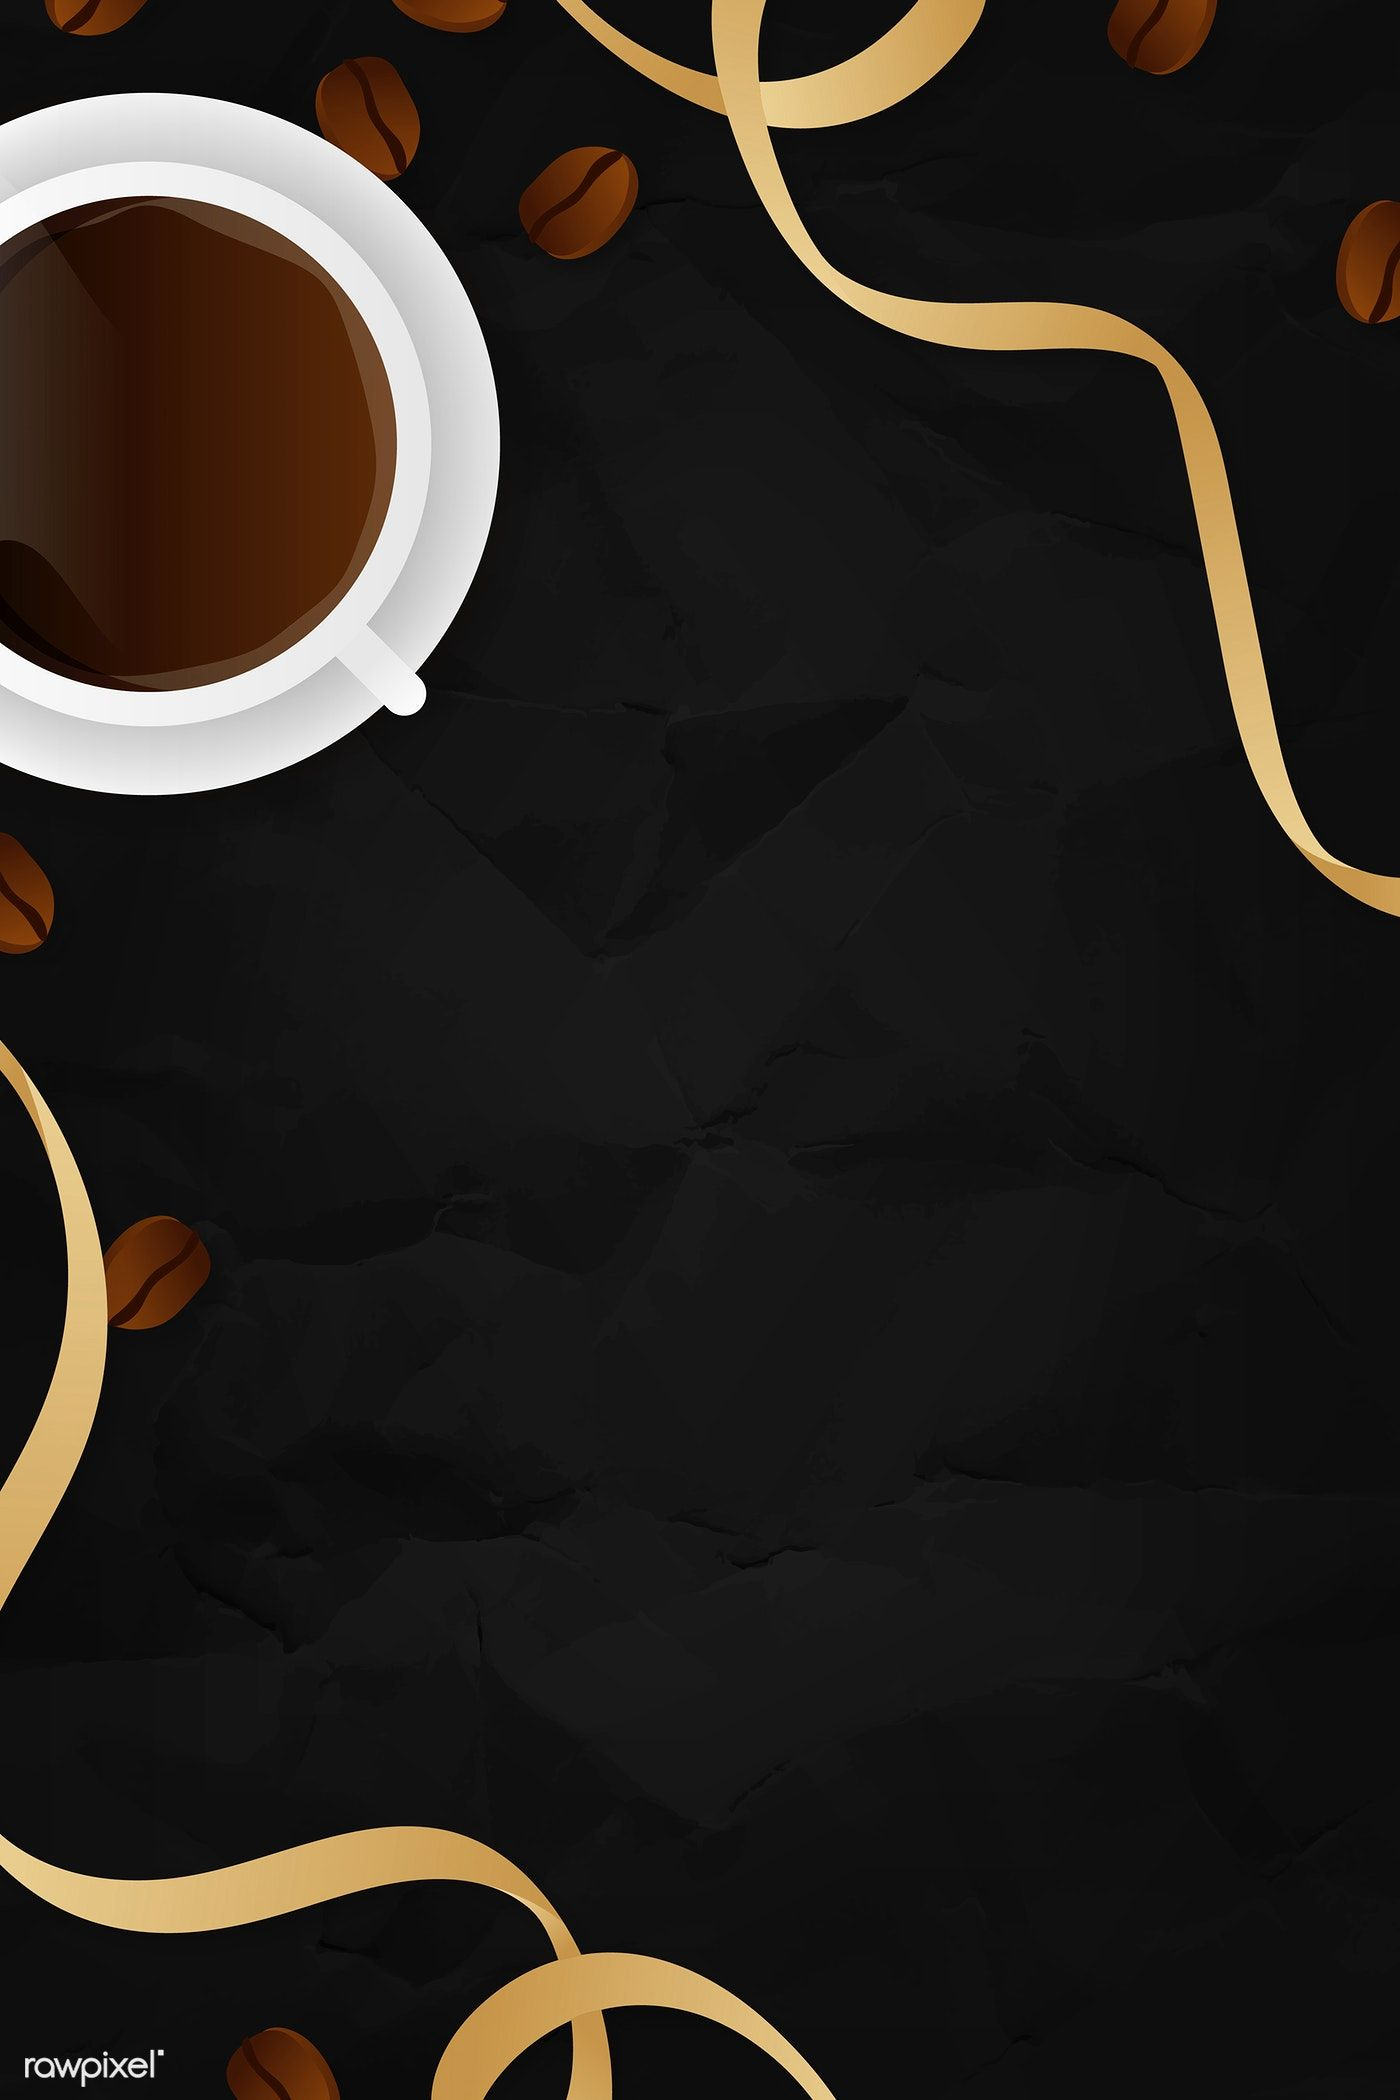 Download premium vector of Coffee cup black background